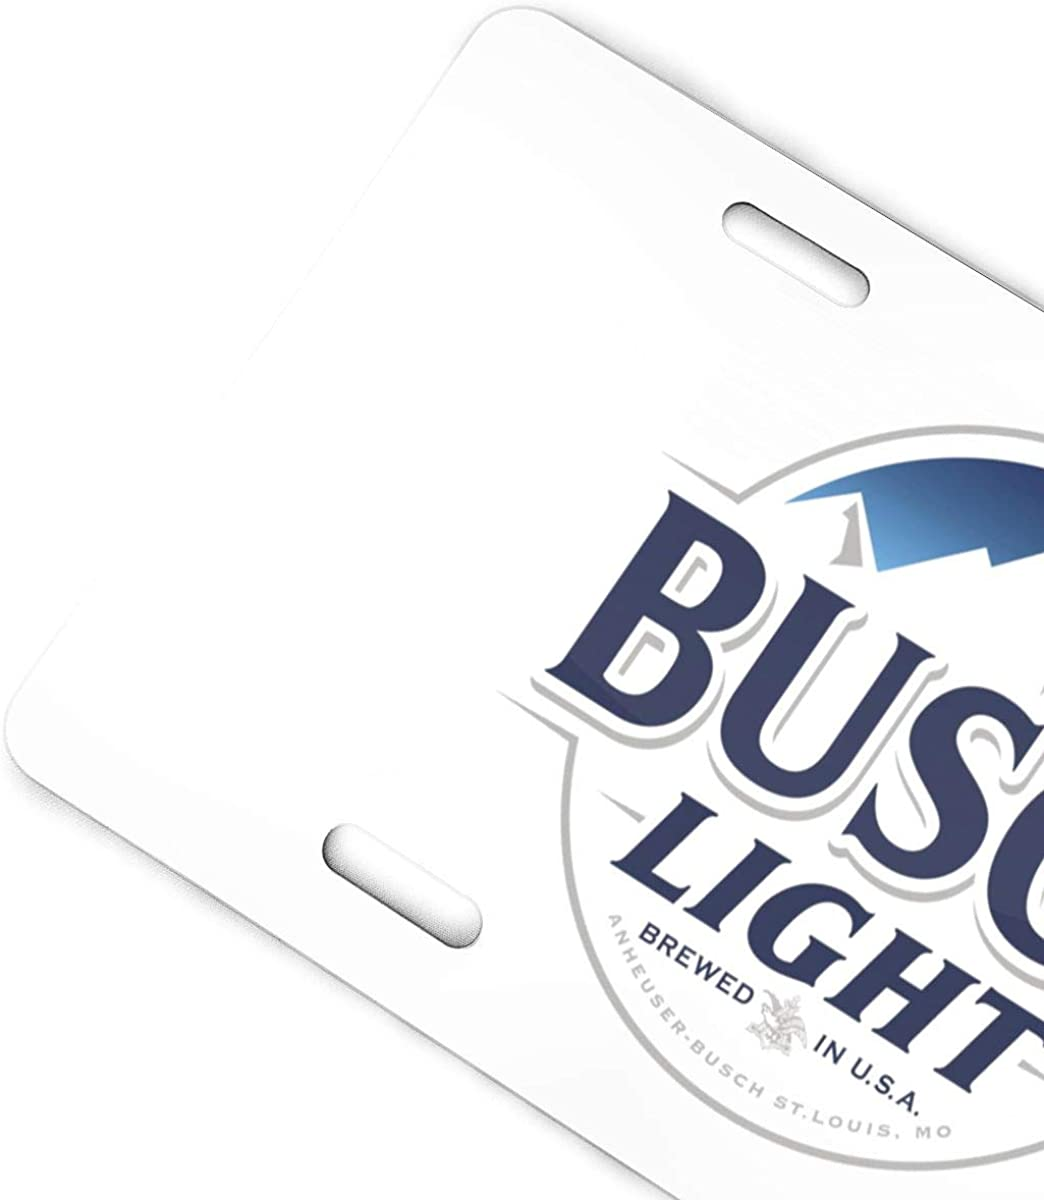 Qq15-kcdds-store Busch Light Decorative Car Front License Plate,Vanity Tag,Metal Car Plate,Aluminum Novelty License Plate for Men//Women//Boy//Girls Car,6 X 12